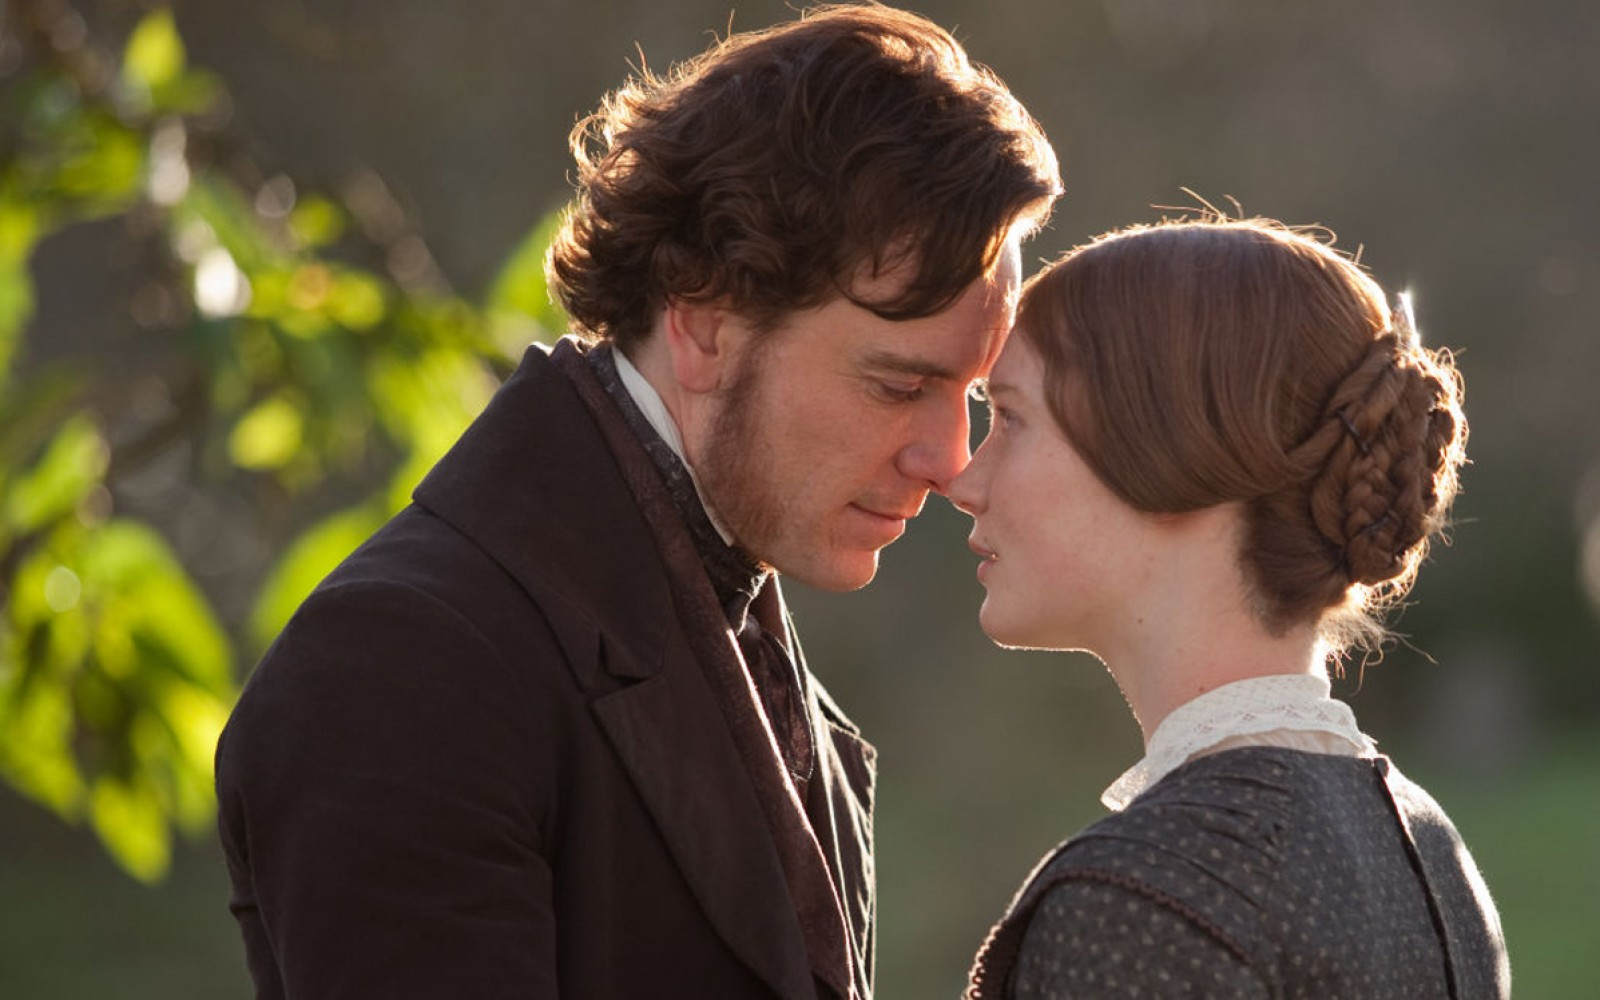 50 Timeless Quotes From The Brontë Sisters To Remind You Women Are Unstoppable